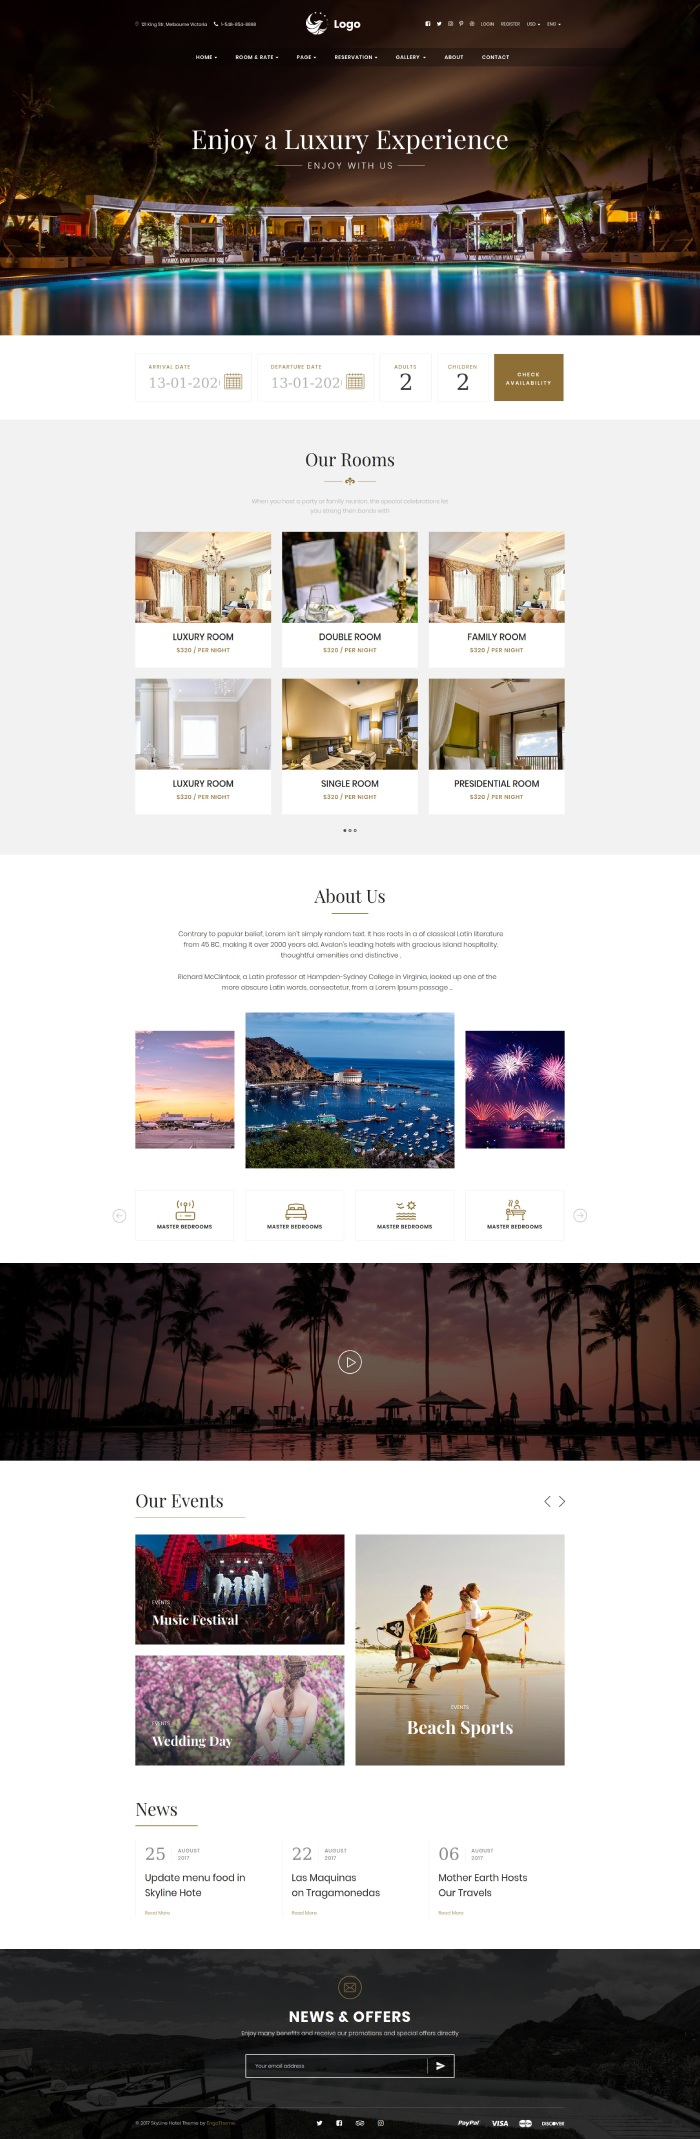 hotel-booking-homepage